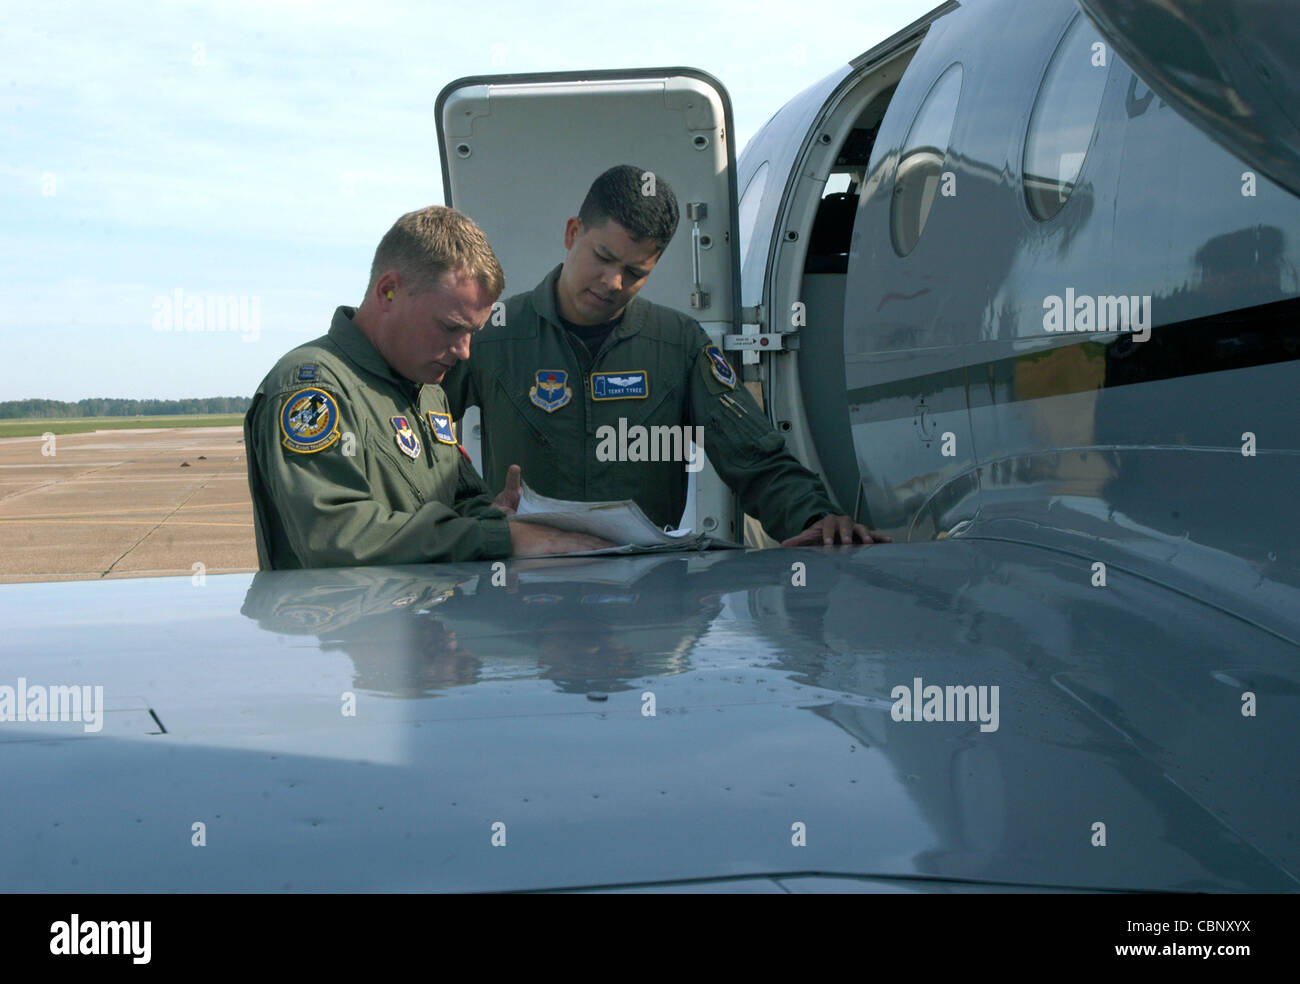 COLUMBUS AIR FORCE BASE, Miss. -- Capt. Stephen Miller (left) reviews aircraft maintenance records with Capt. Terry - Stock Image